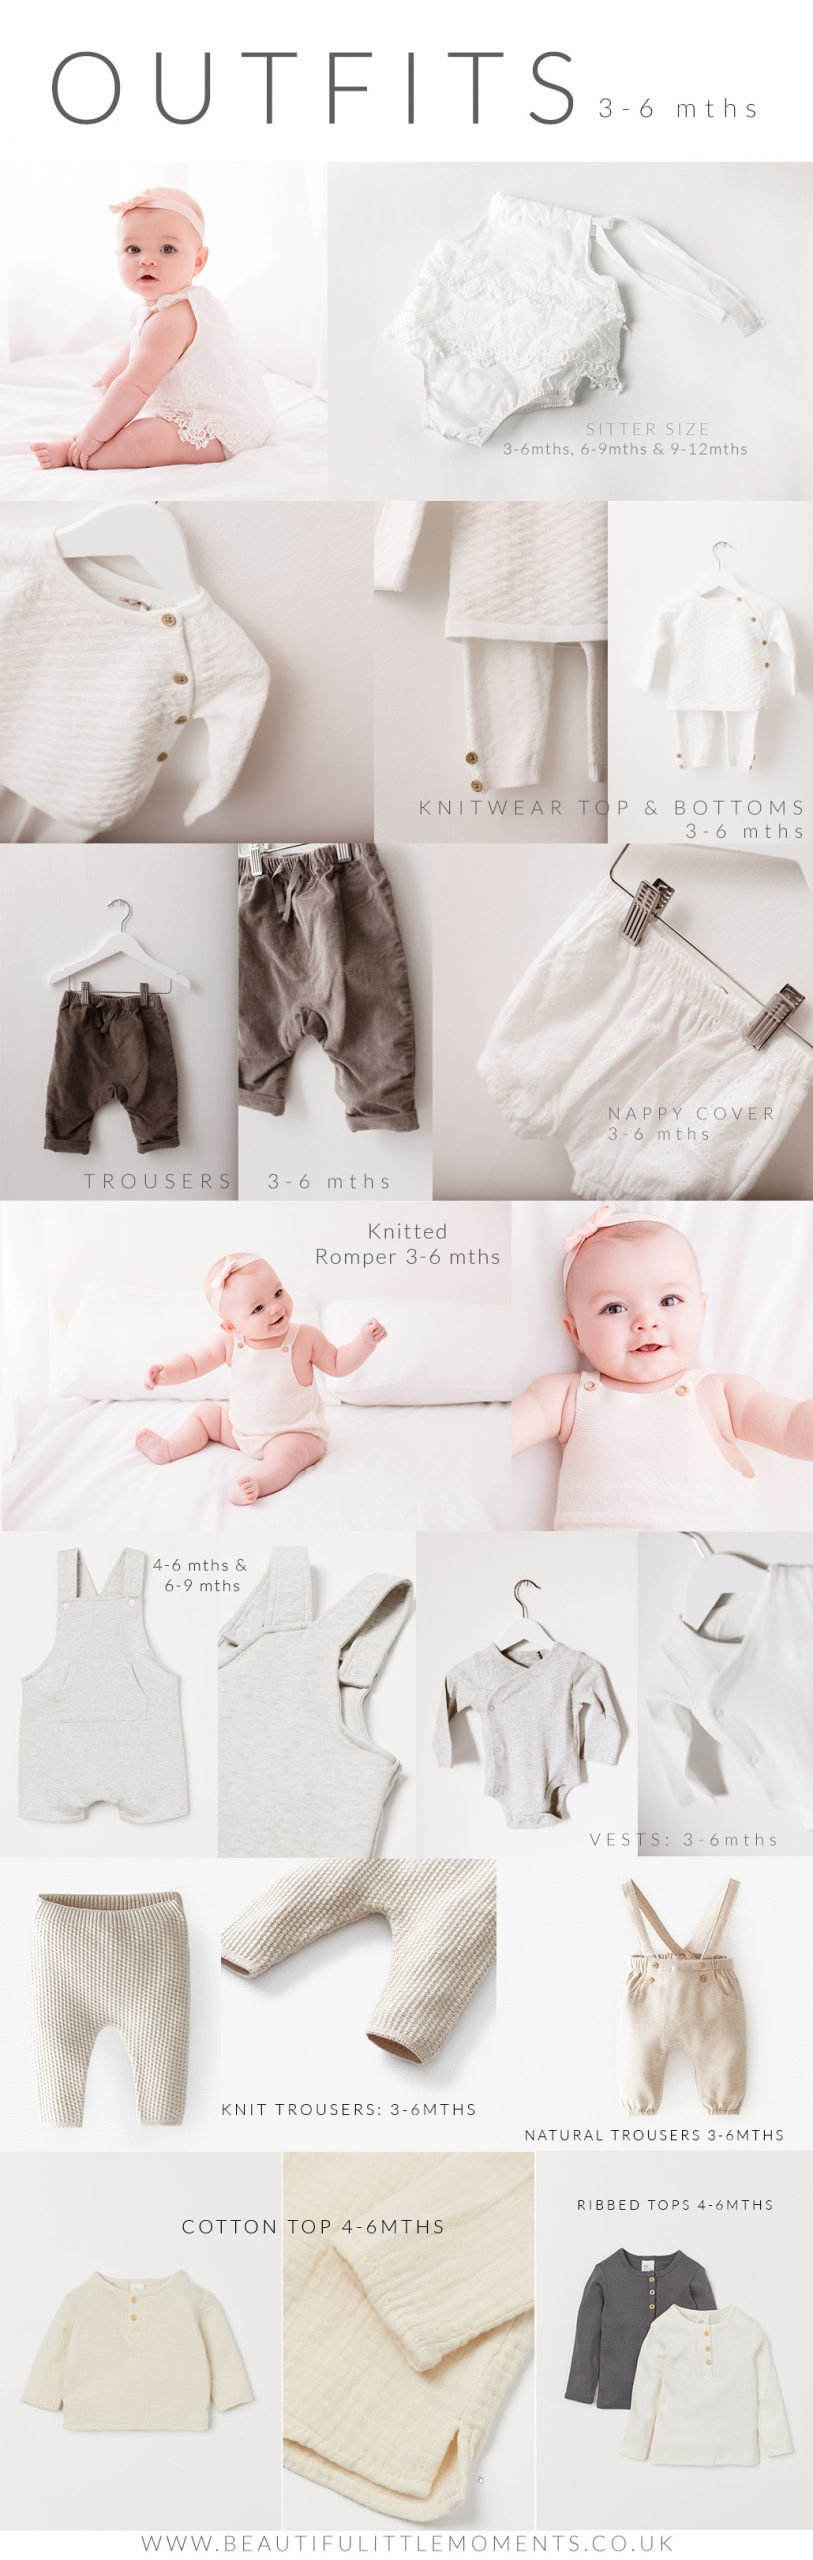 photography outfits available for 3-6month olds